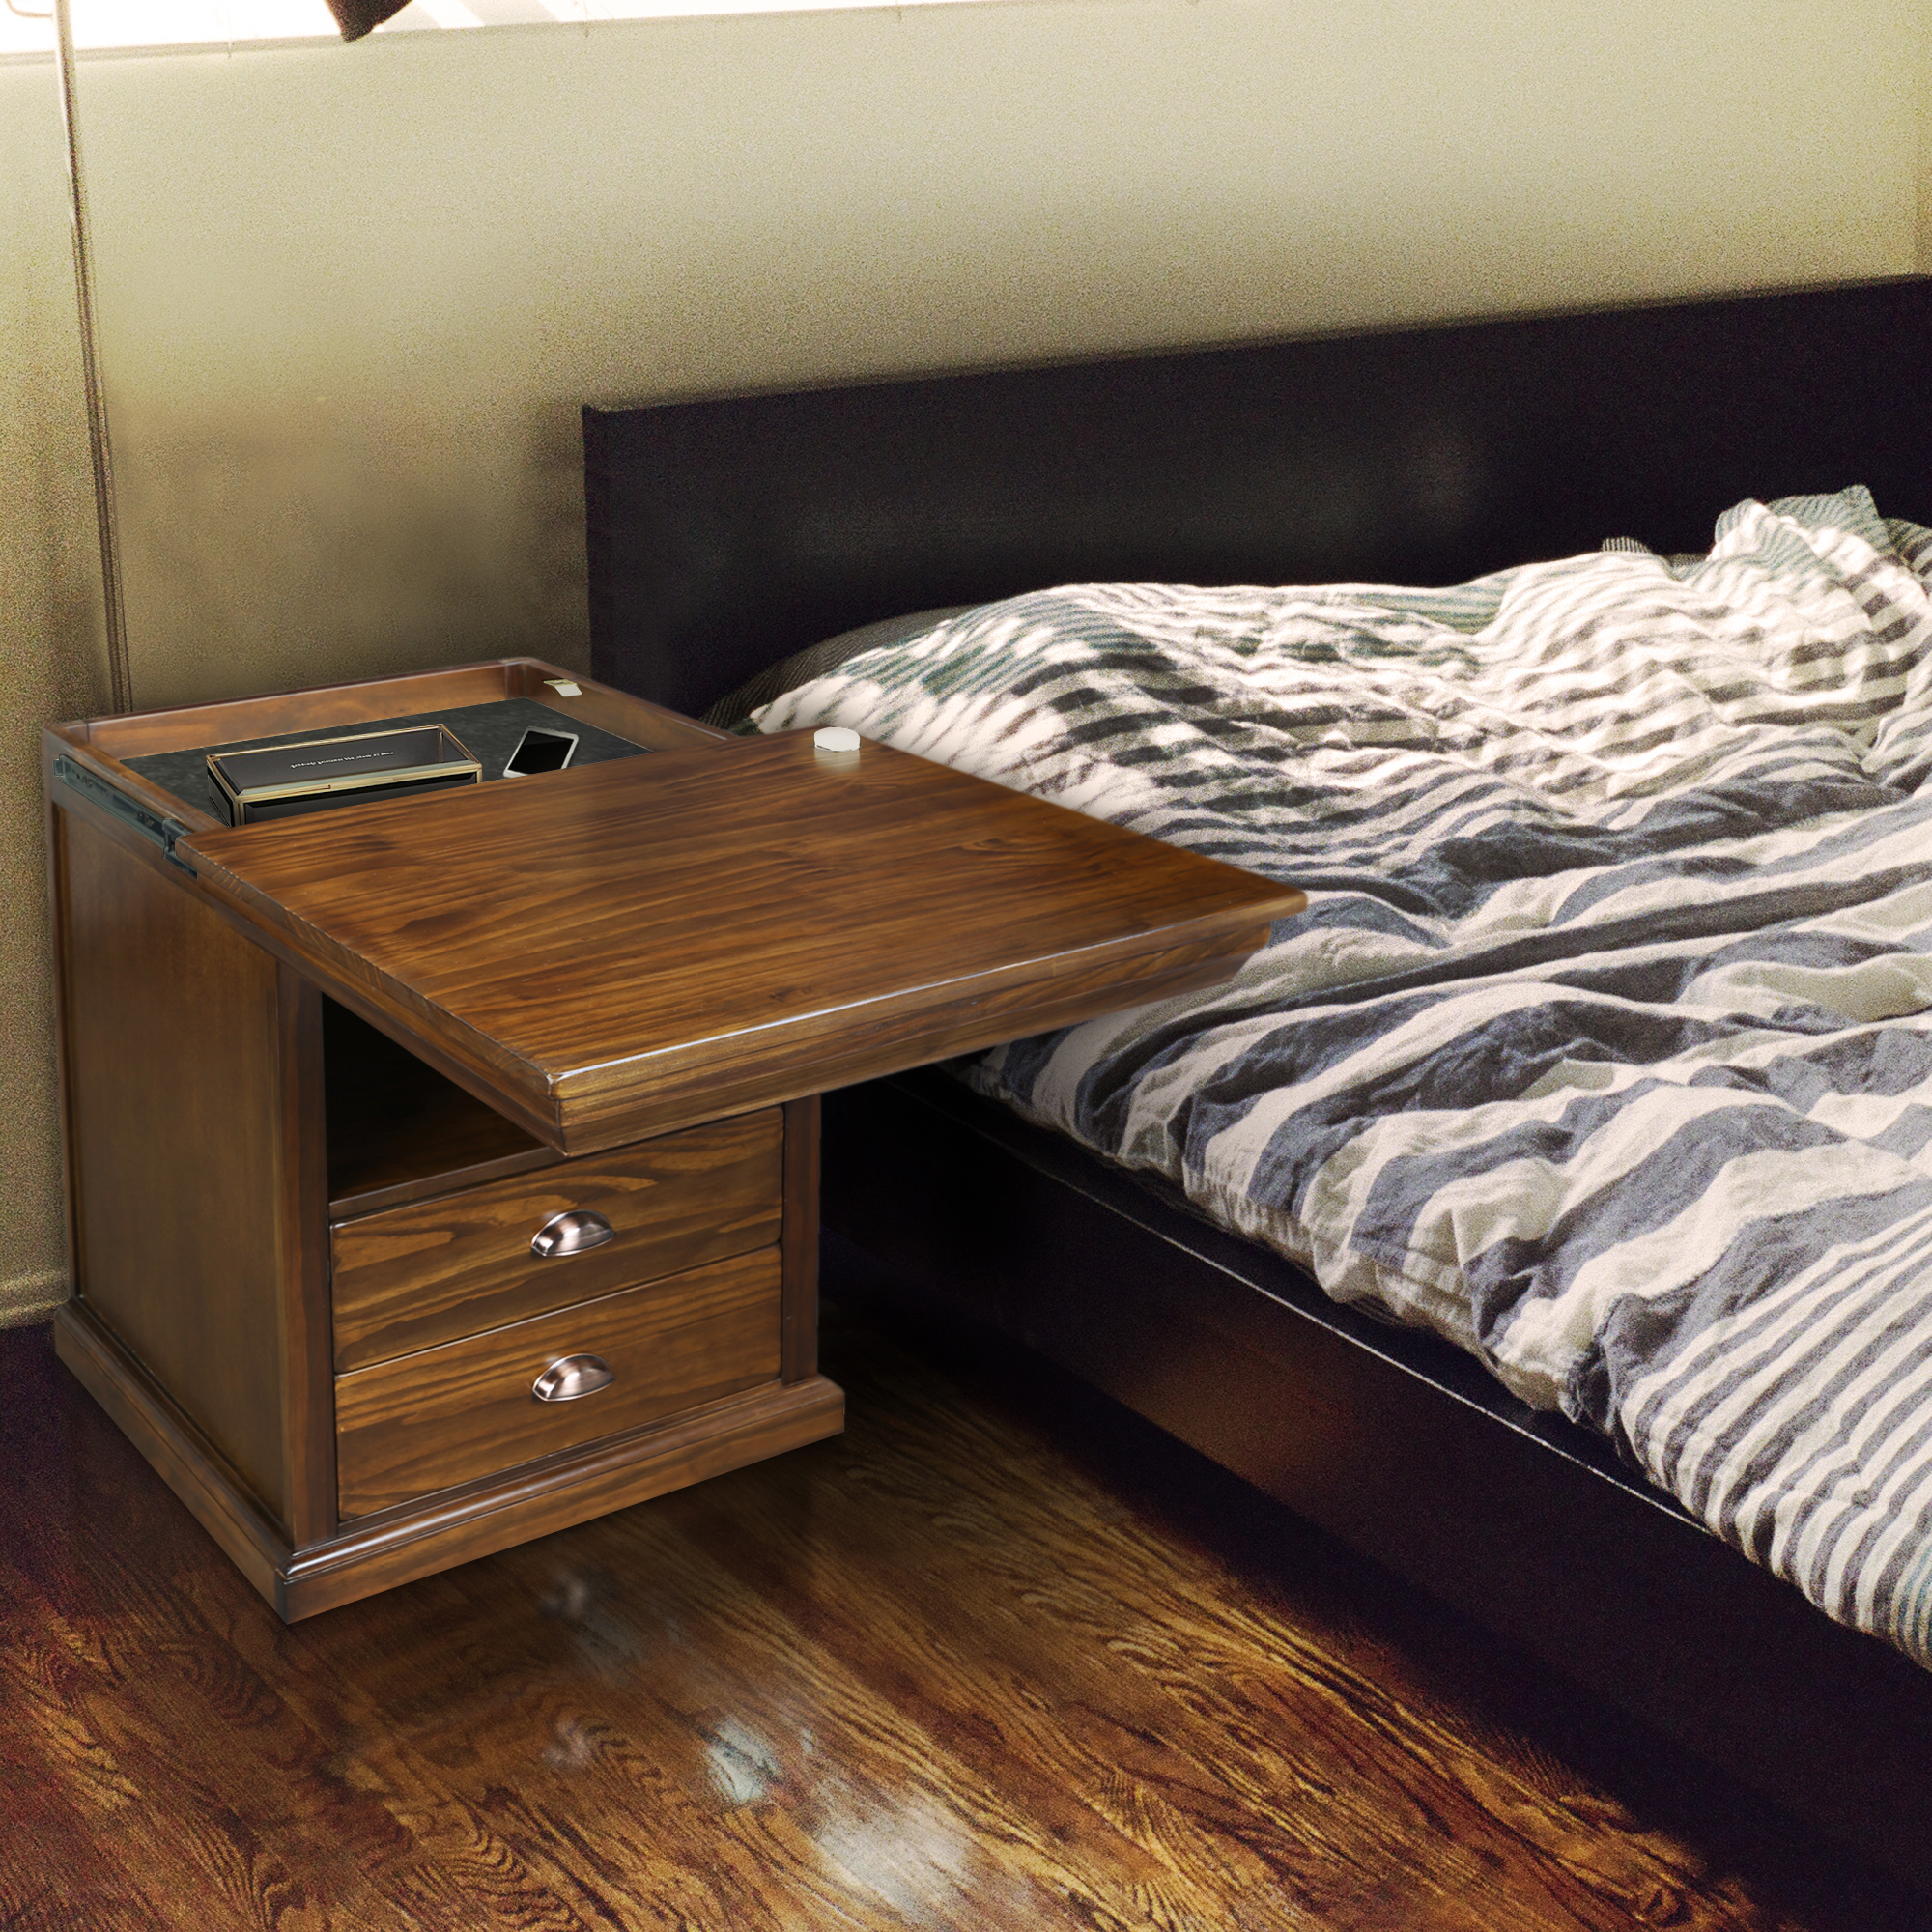 Casualhome Com Online Store For Home Furniture Decor And